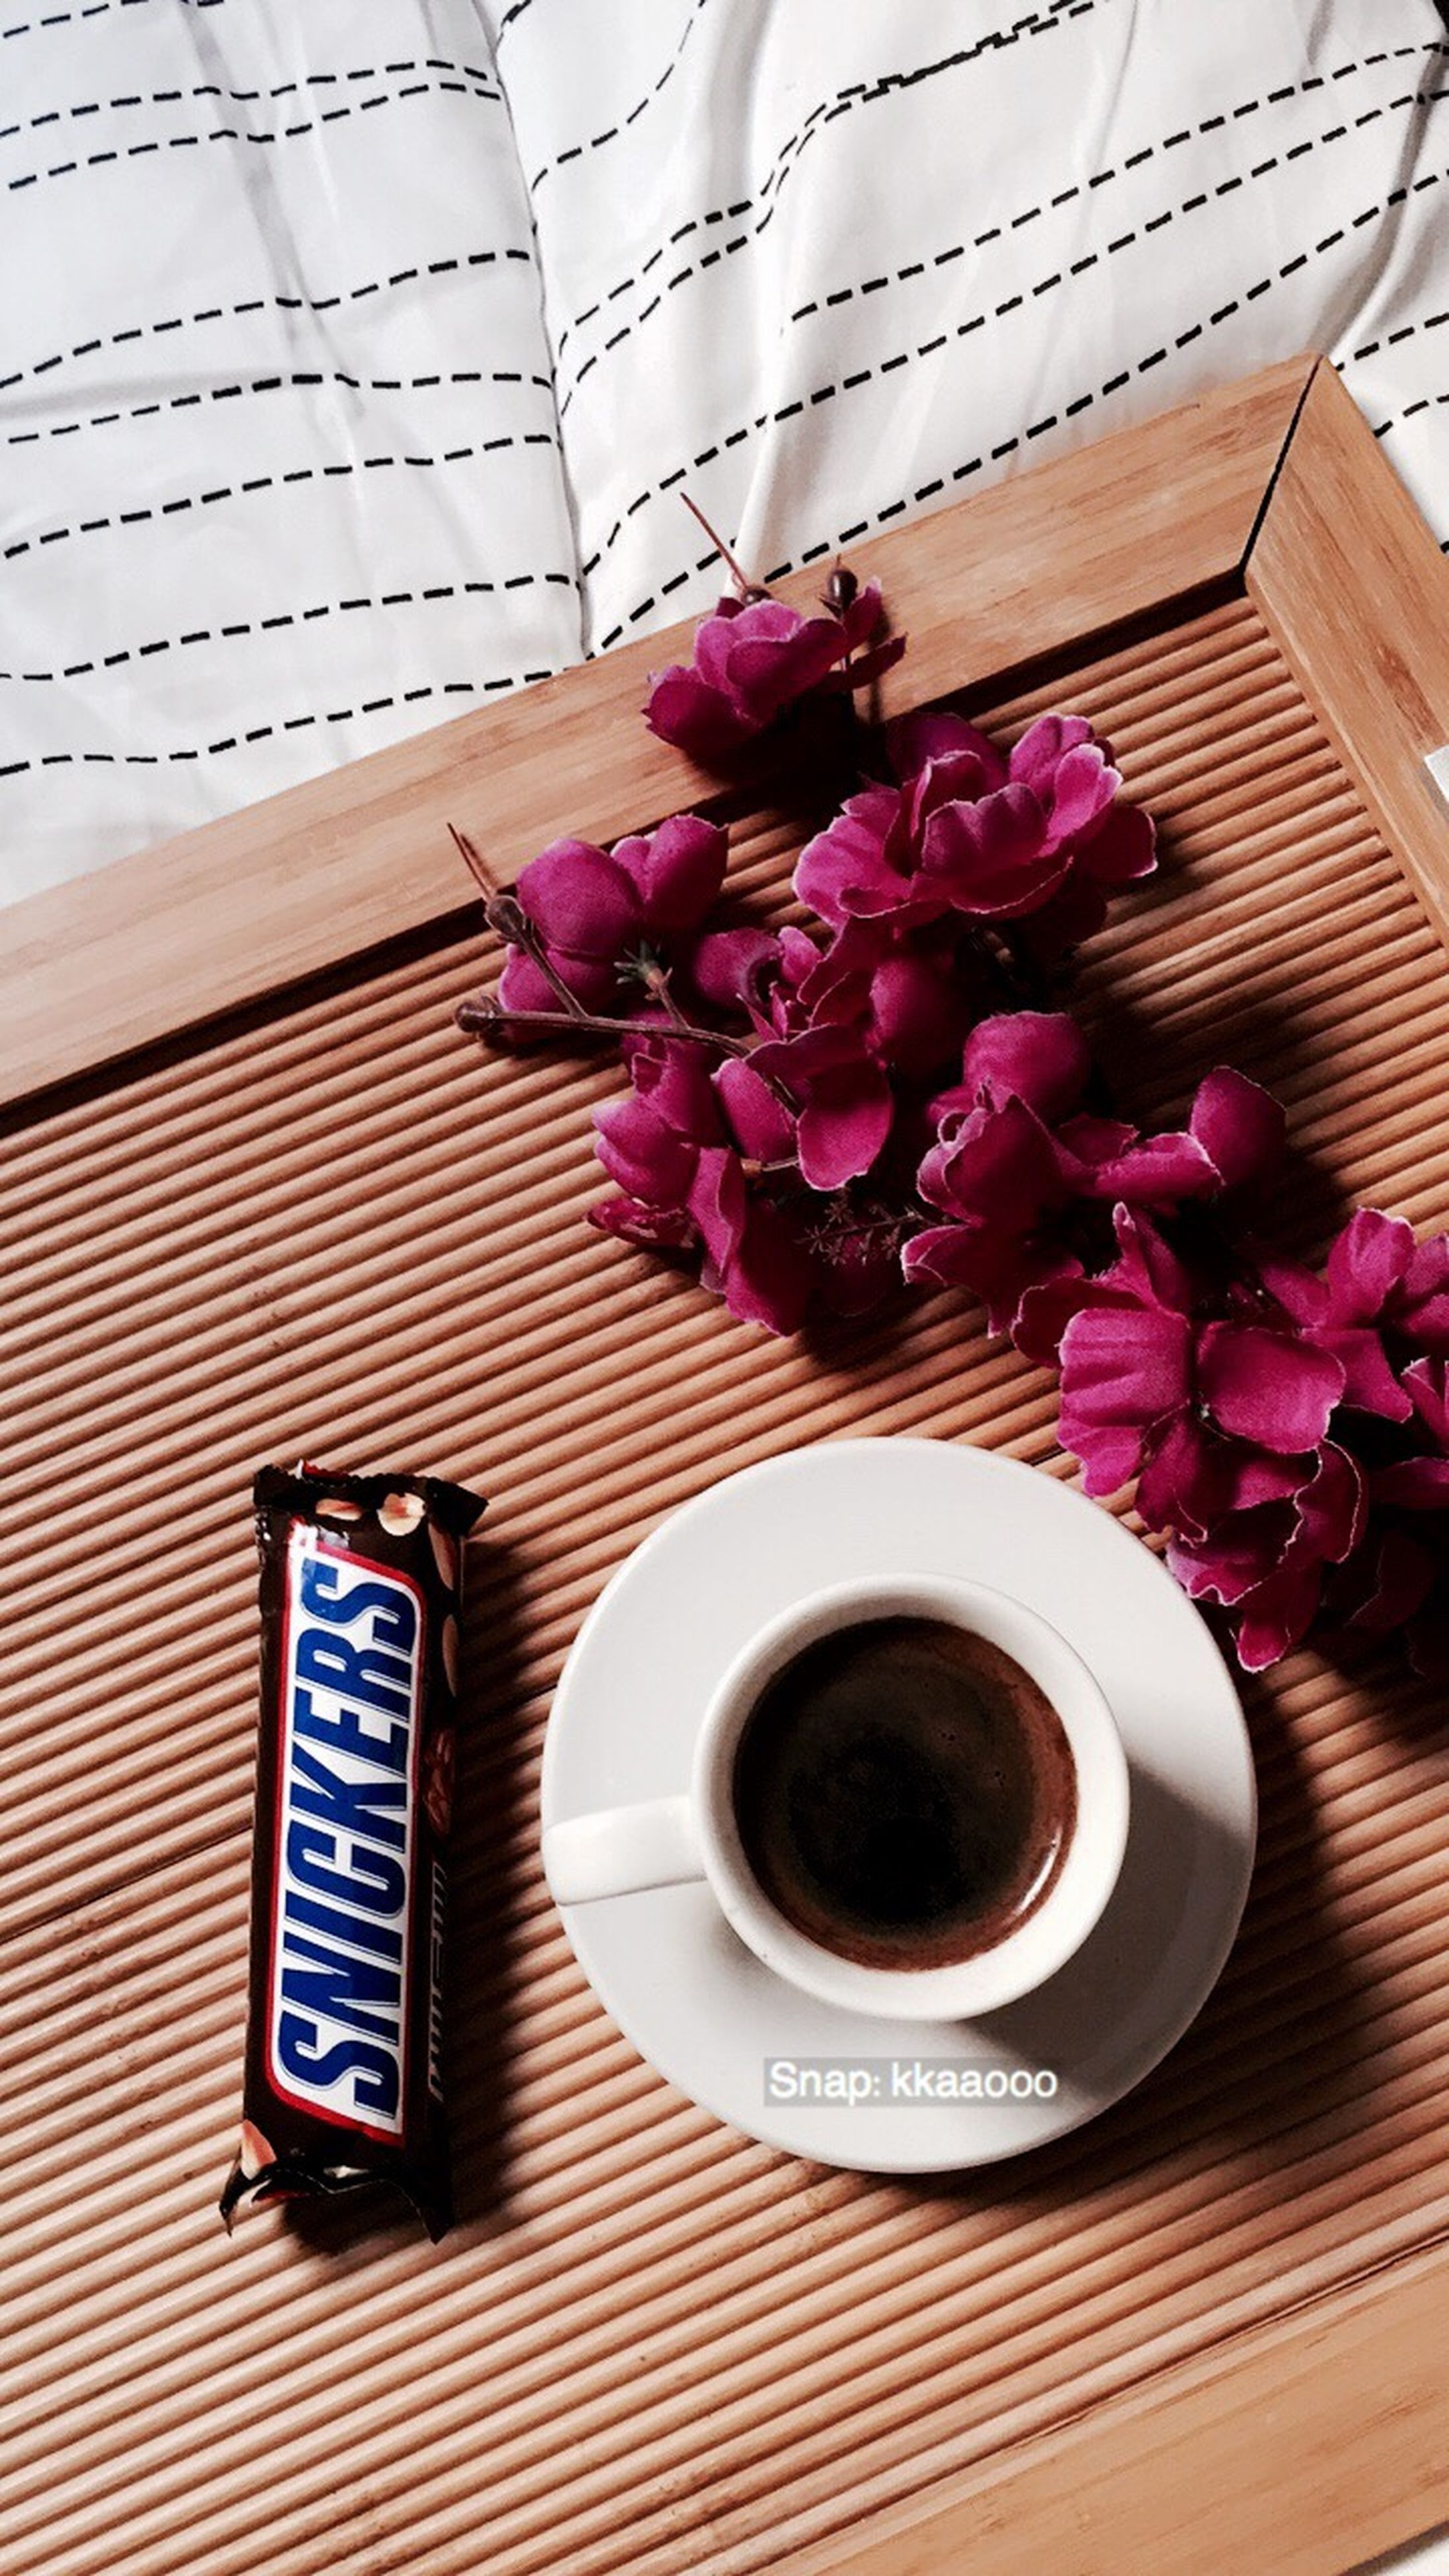 flower, still life, coffee cup, freshness, coffee - drink, drink, no people, high angle view, food and drink, flower head, close-up, refreshment, indoors, fragility, nature, day, latte